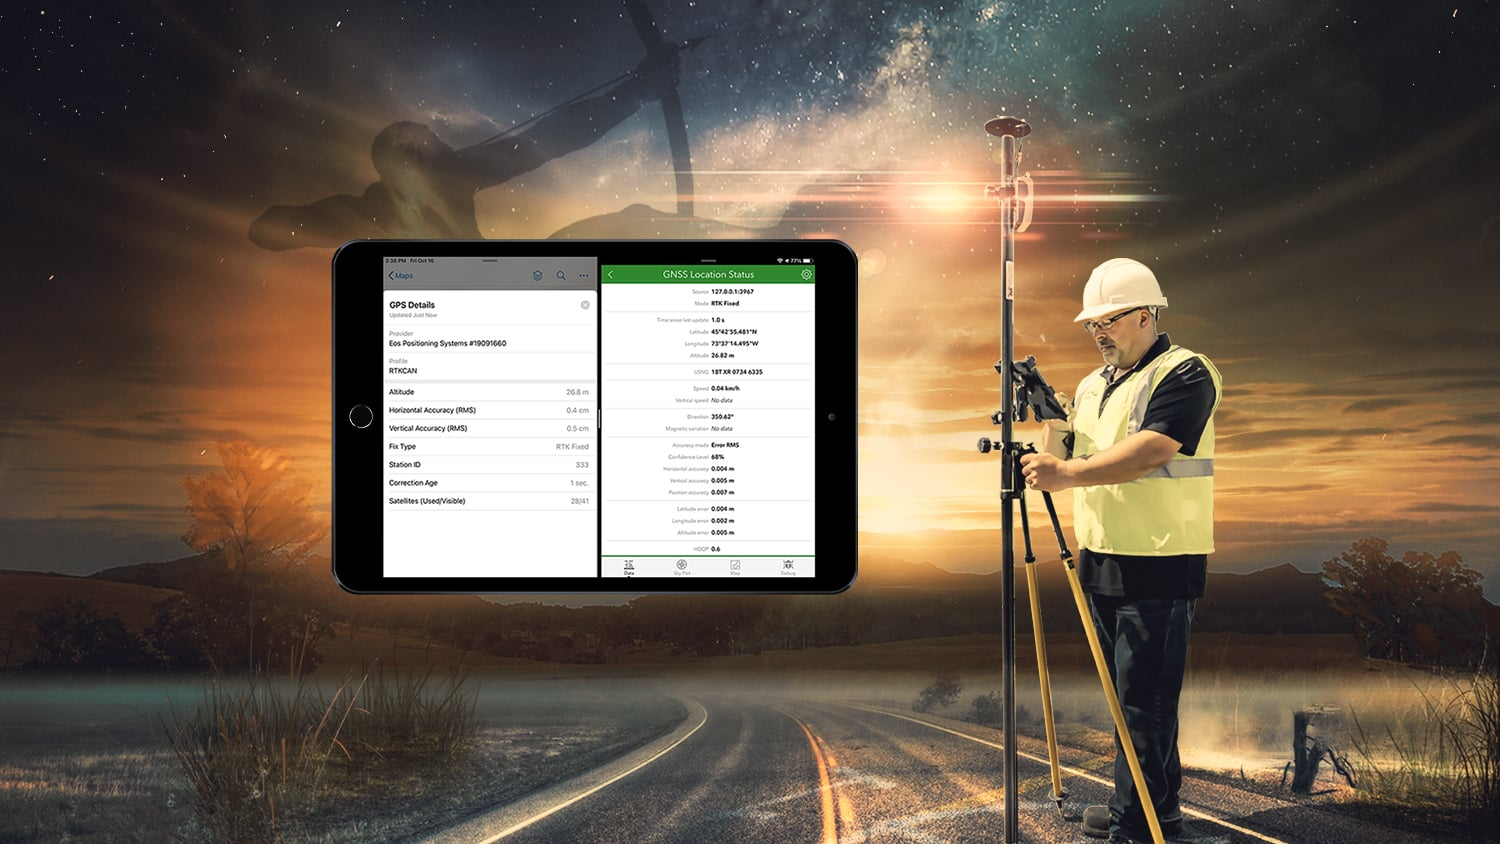 ArcGIS Collector, Field Maps, offline, data collection, field, mobile mapping, water utility, Arrow GNSS GPS